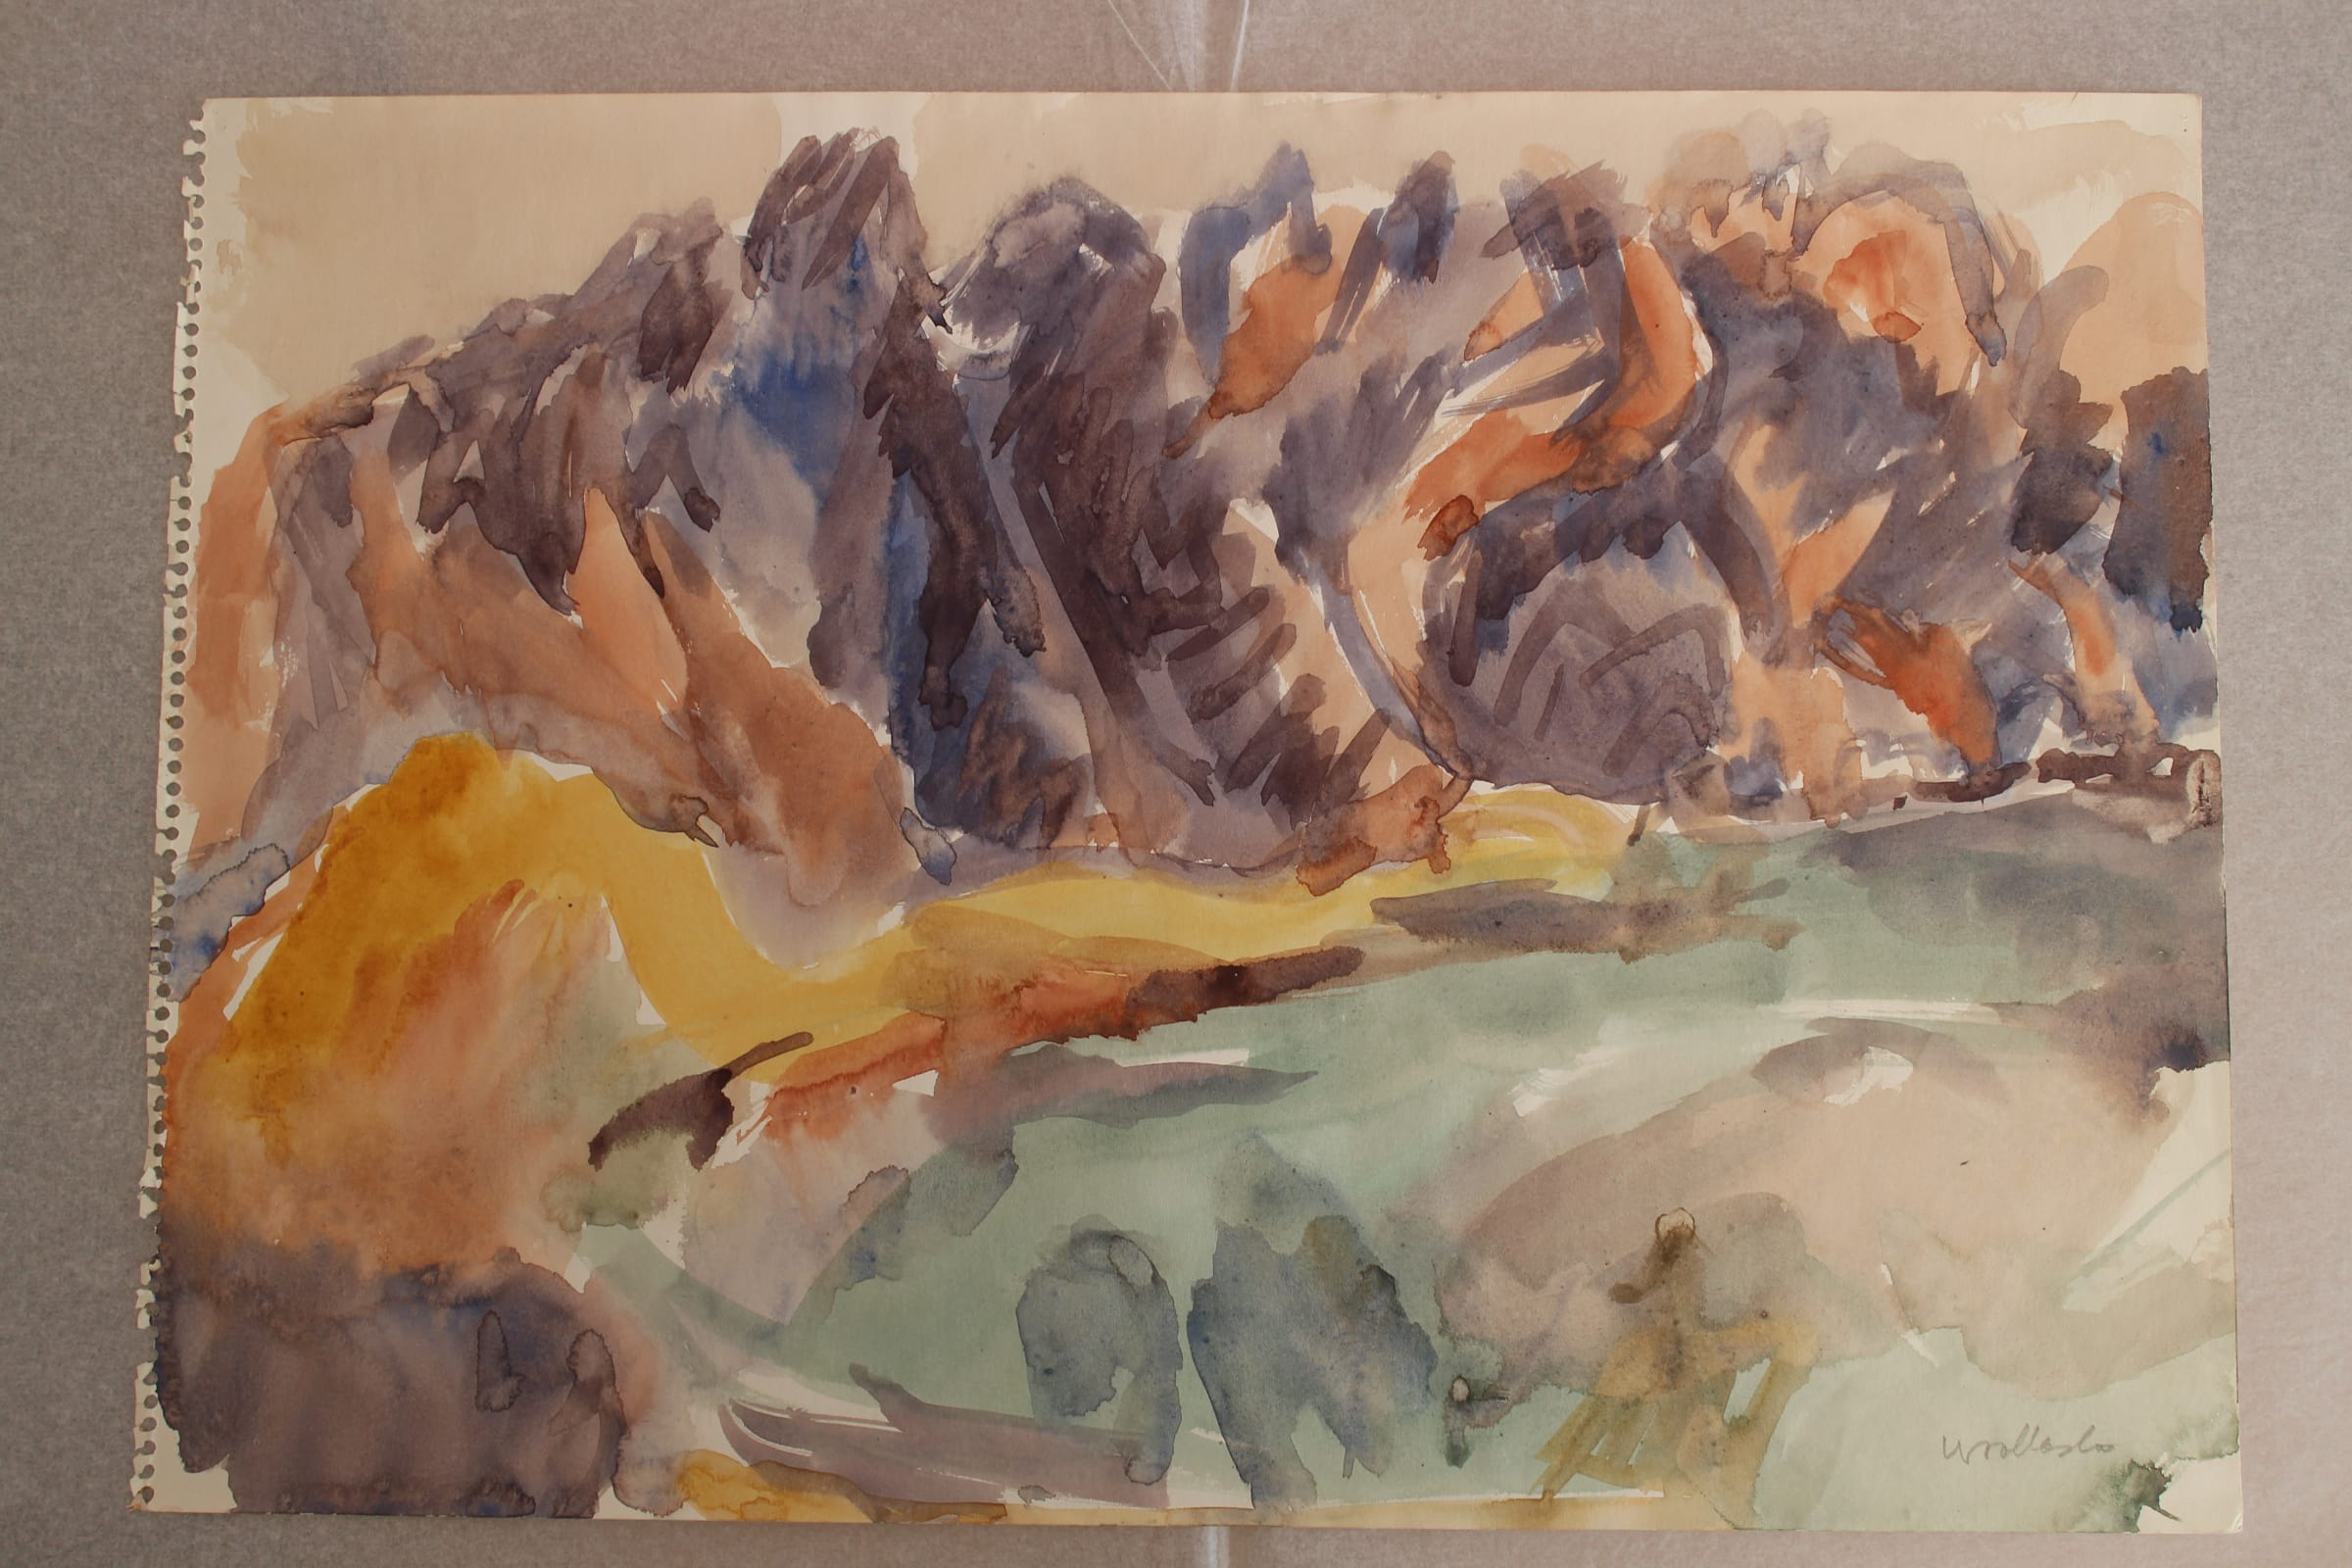 <span class=&#34;link fancybox-details-link&#34;><a href=&#34;/exhibitions/57/works/artworks5027/&#34;>View Detail Page</a></span><div class=&#34;signed_and_dated&#34;>Signed bottom right corner</div> <div class=&#34;medium&#34;>Watercolour on paper</div> <div class=&#34;dimensions&#34;>12.4 x 17.9 in<br />31.5 x 45.5 cm</div>